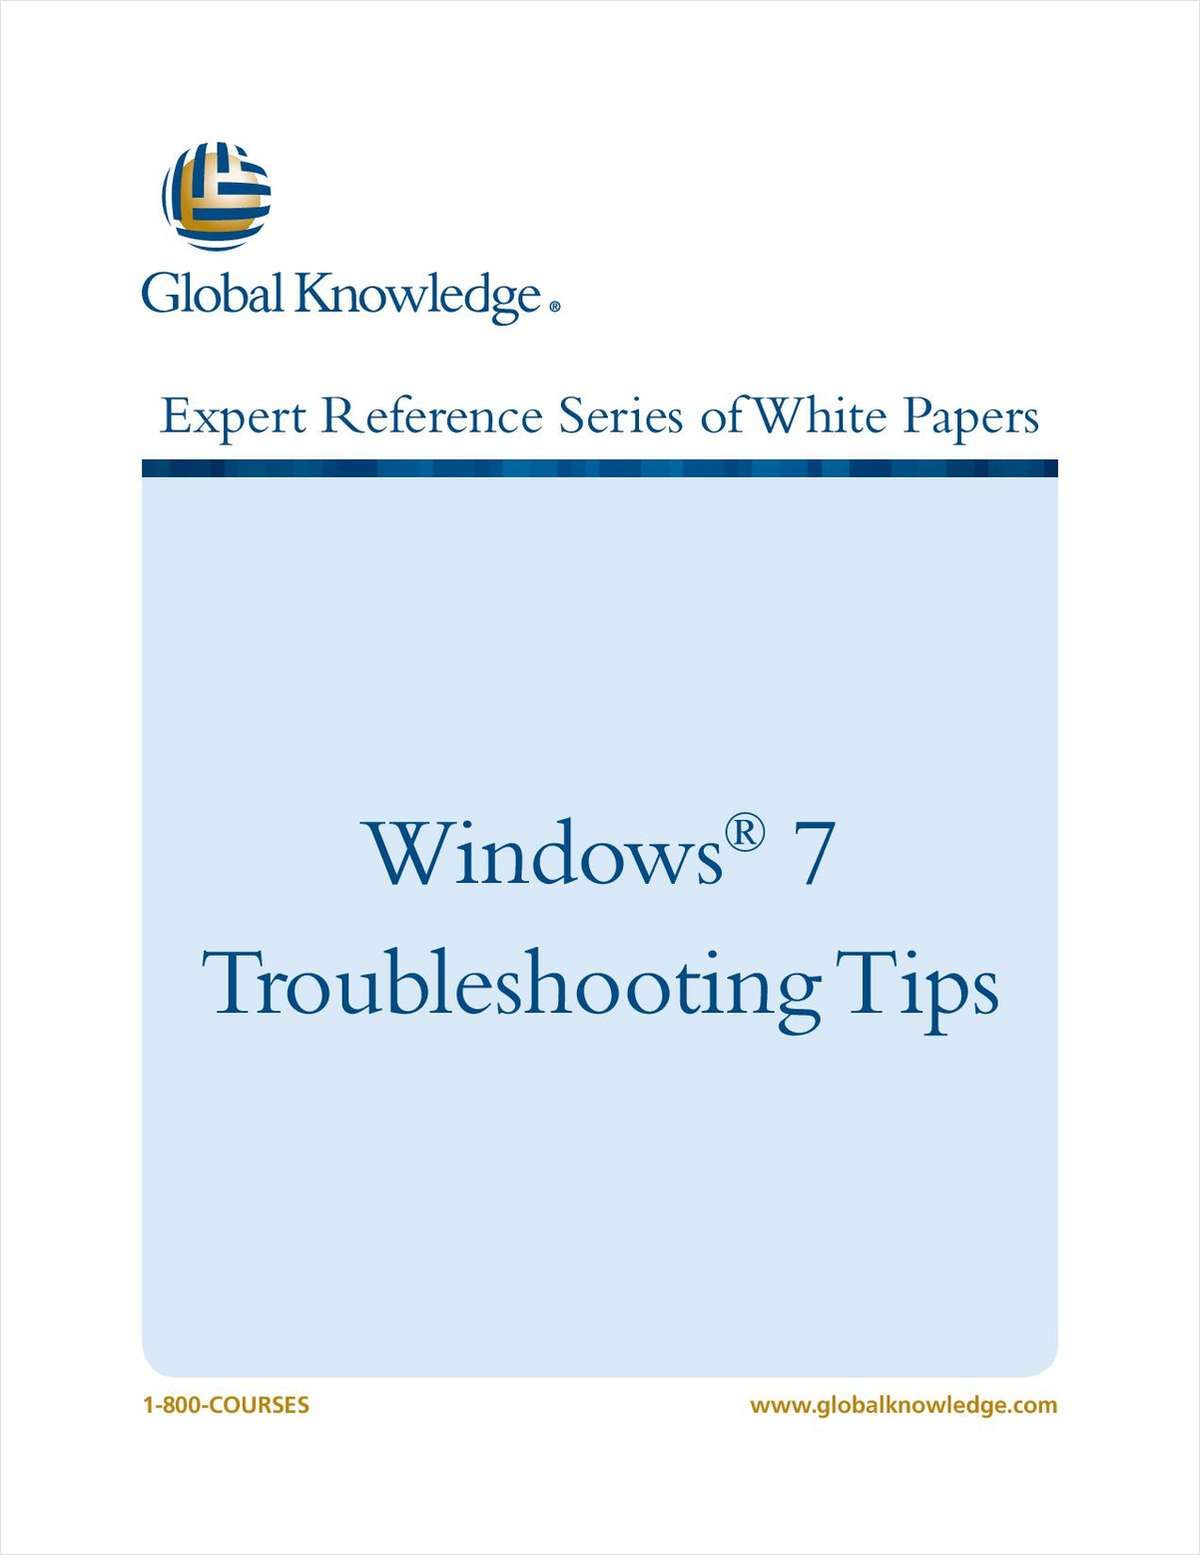 Windows 7 Troubleshooting Tips